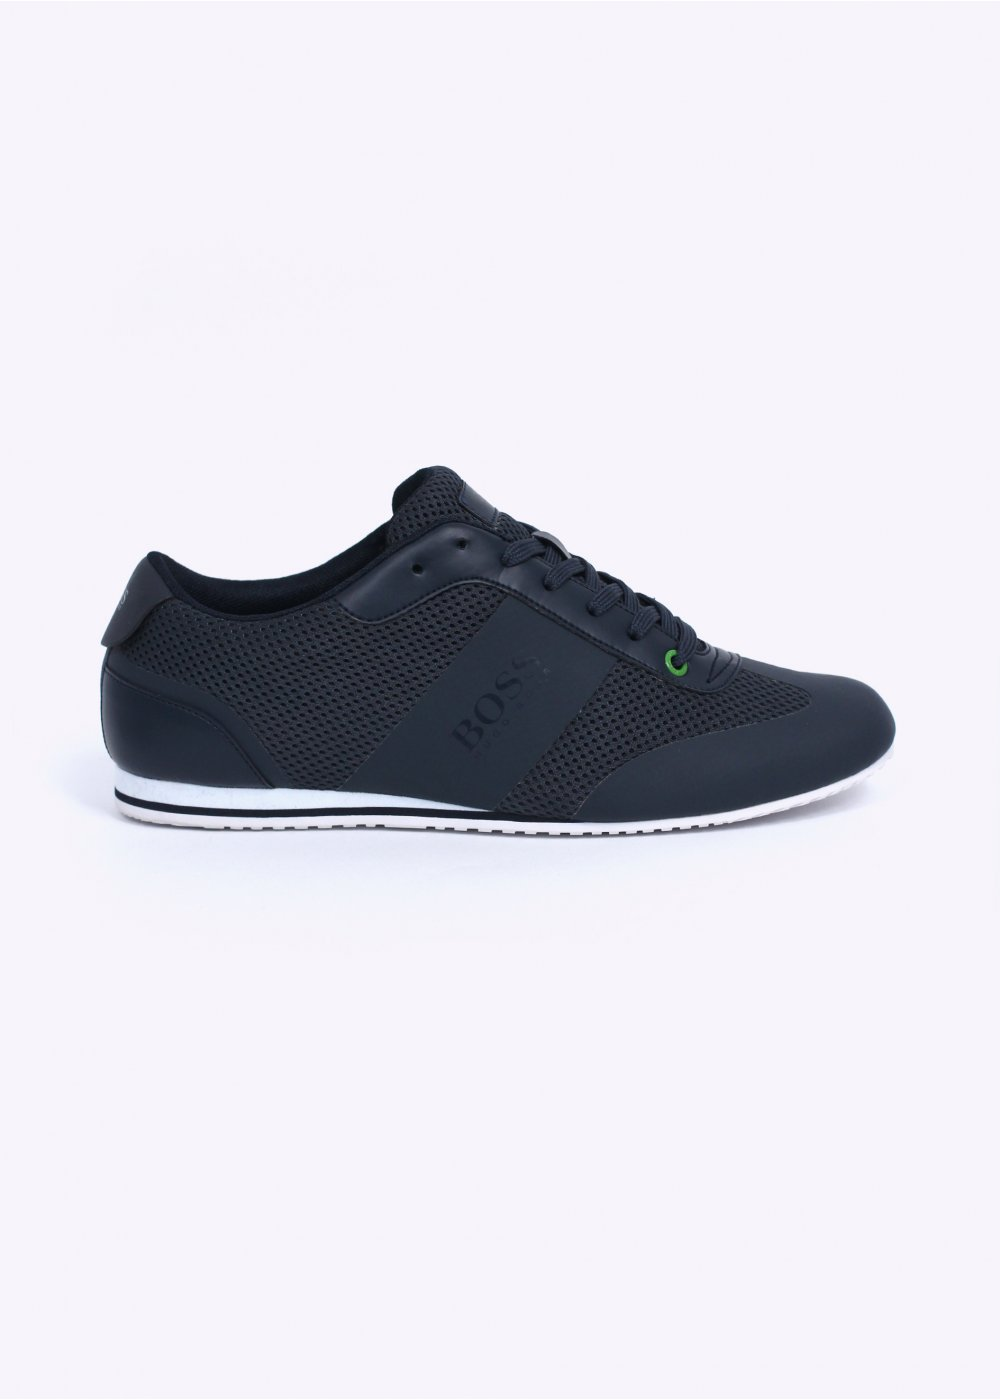 dirt cheap look for a great variety of models Hugo Boss Footwear / Boss Green - Light Air Trainers - Navy Blue